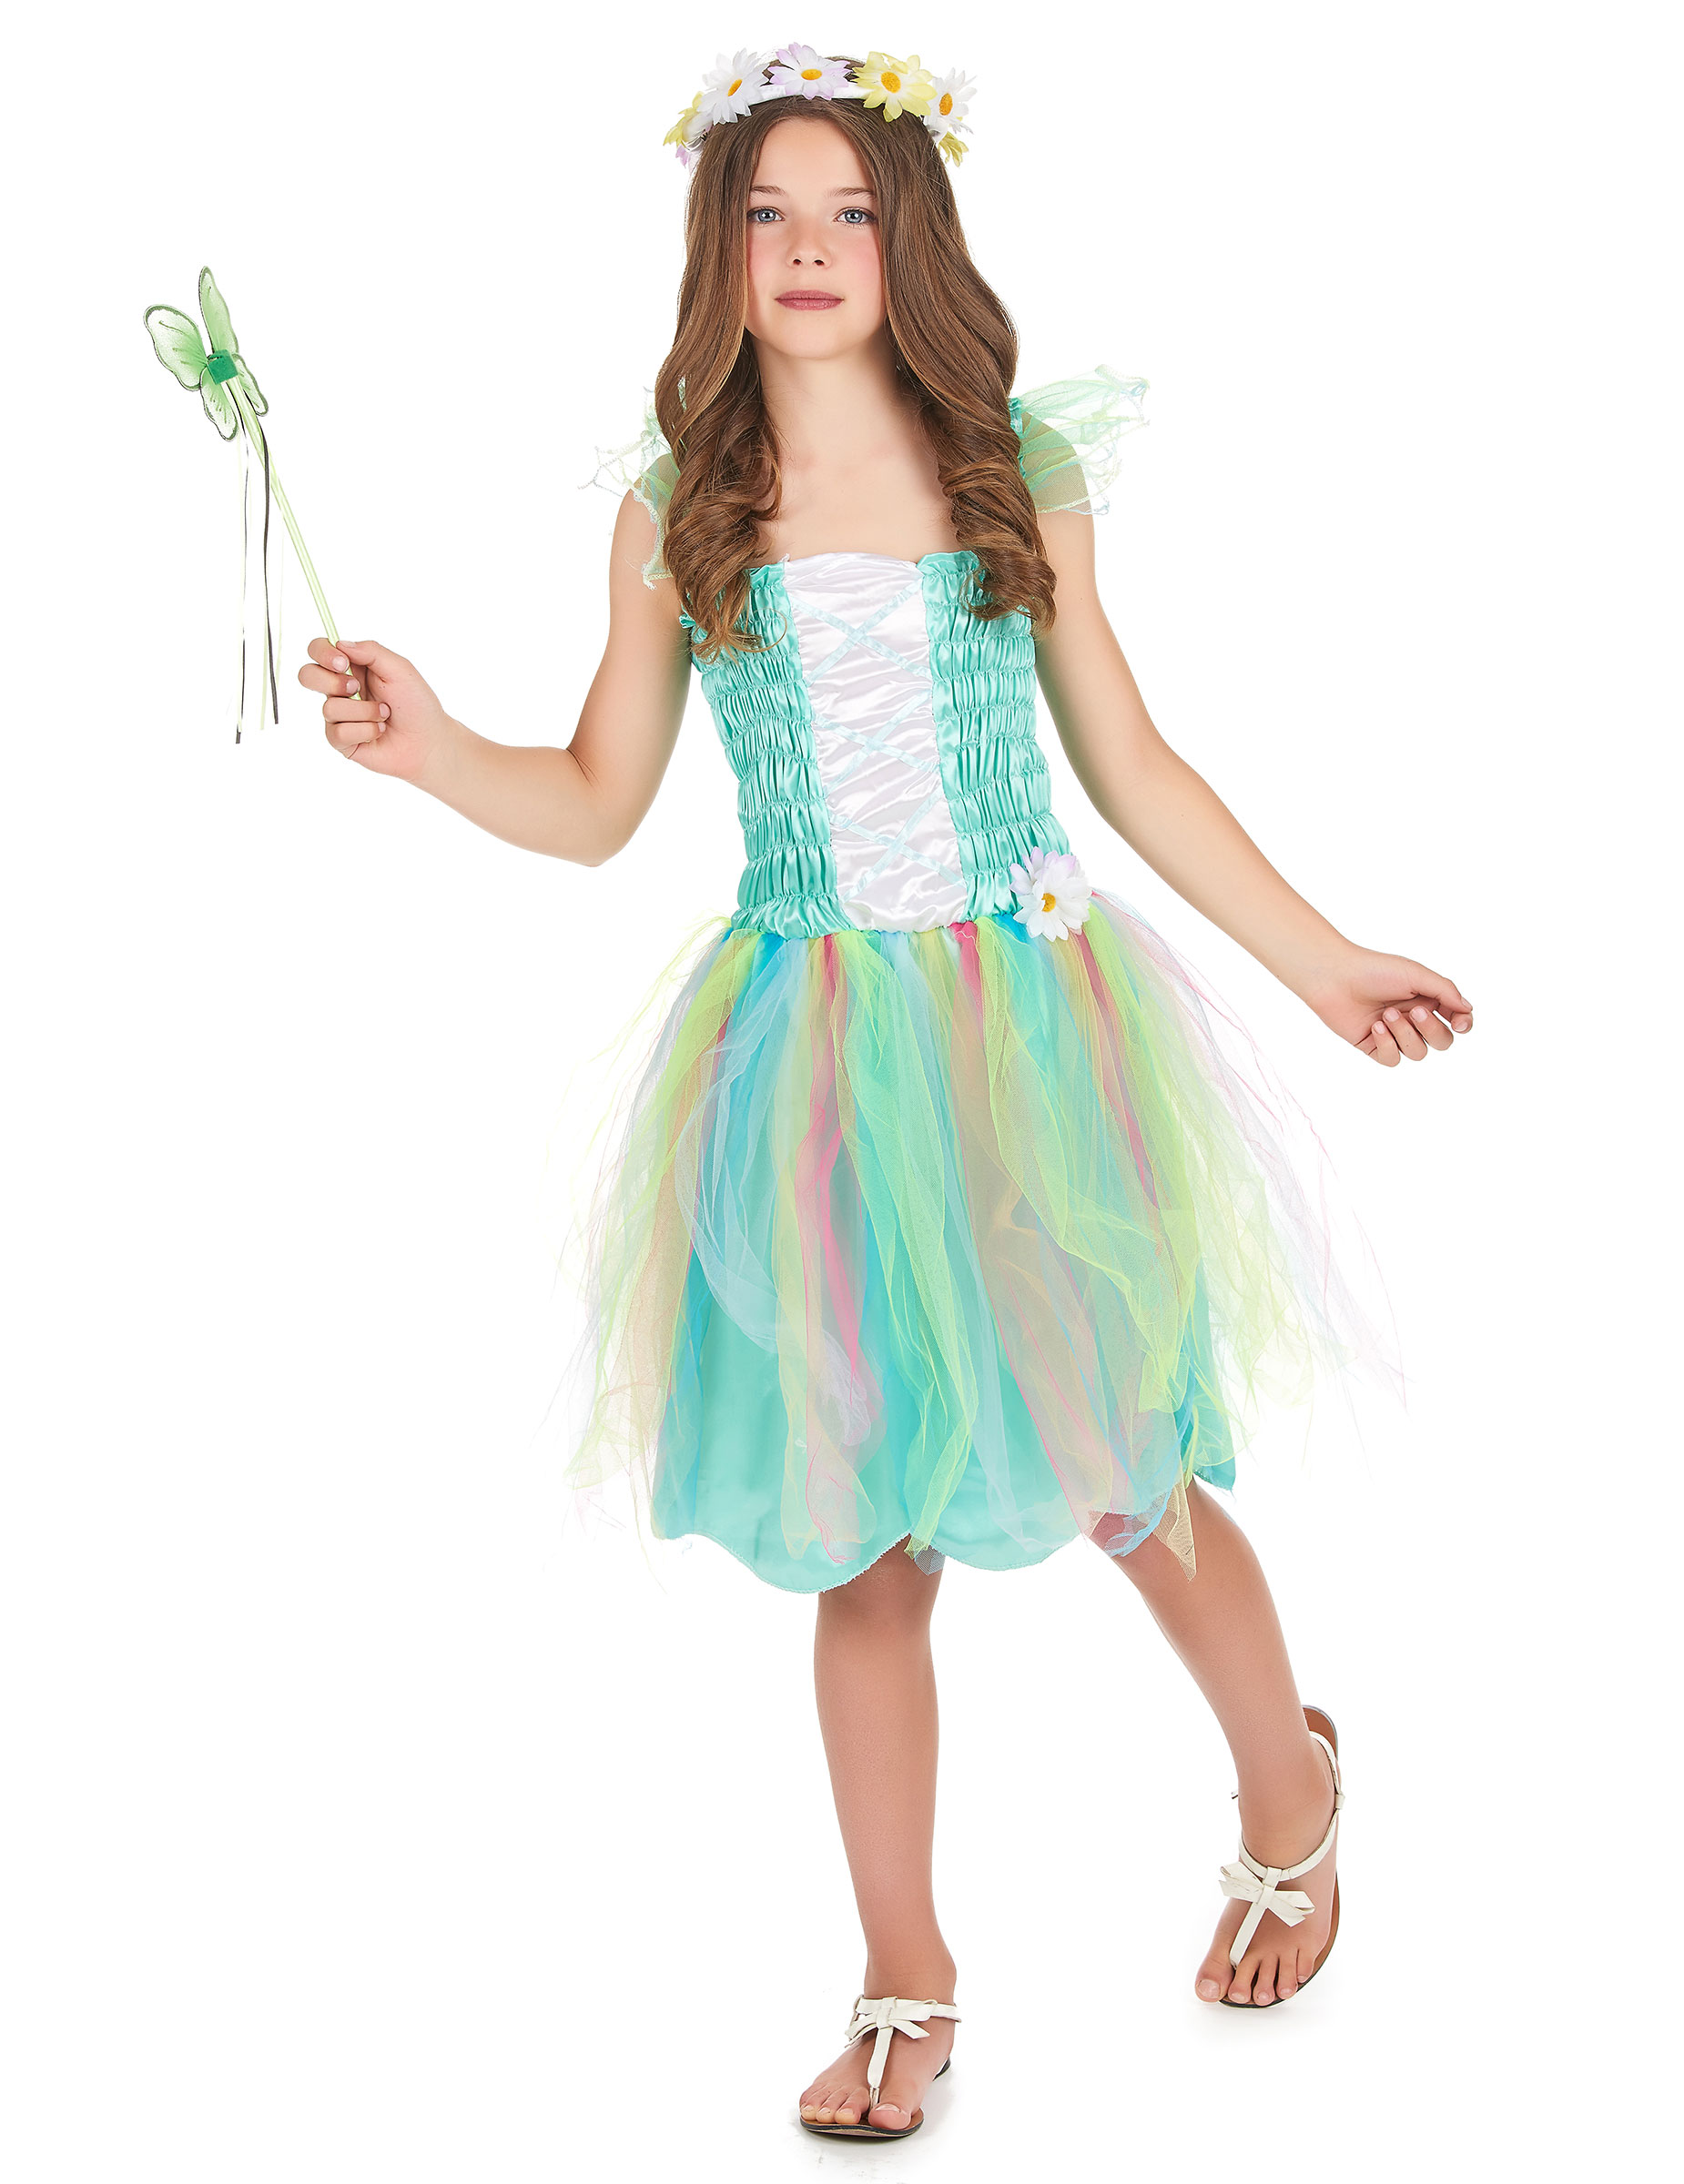 Flower Princess costume for girls